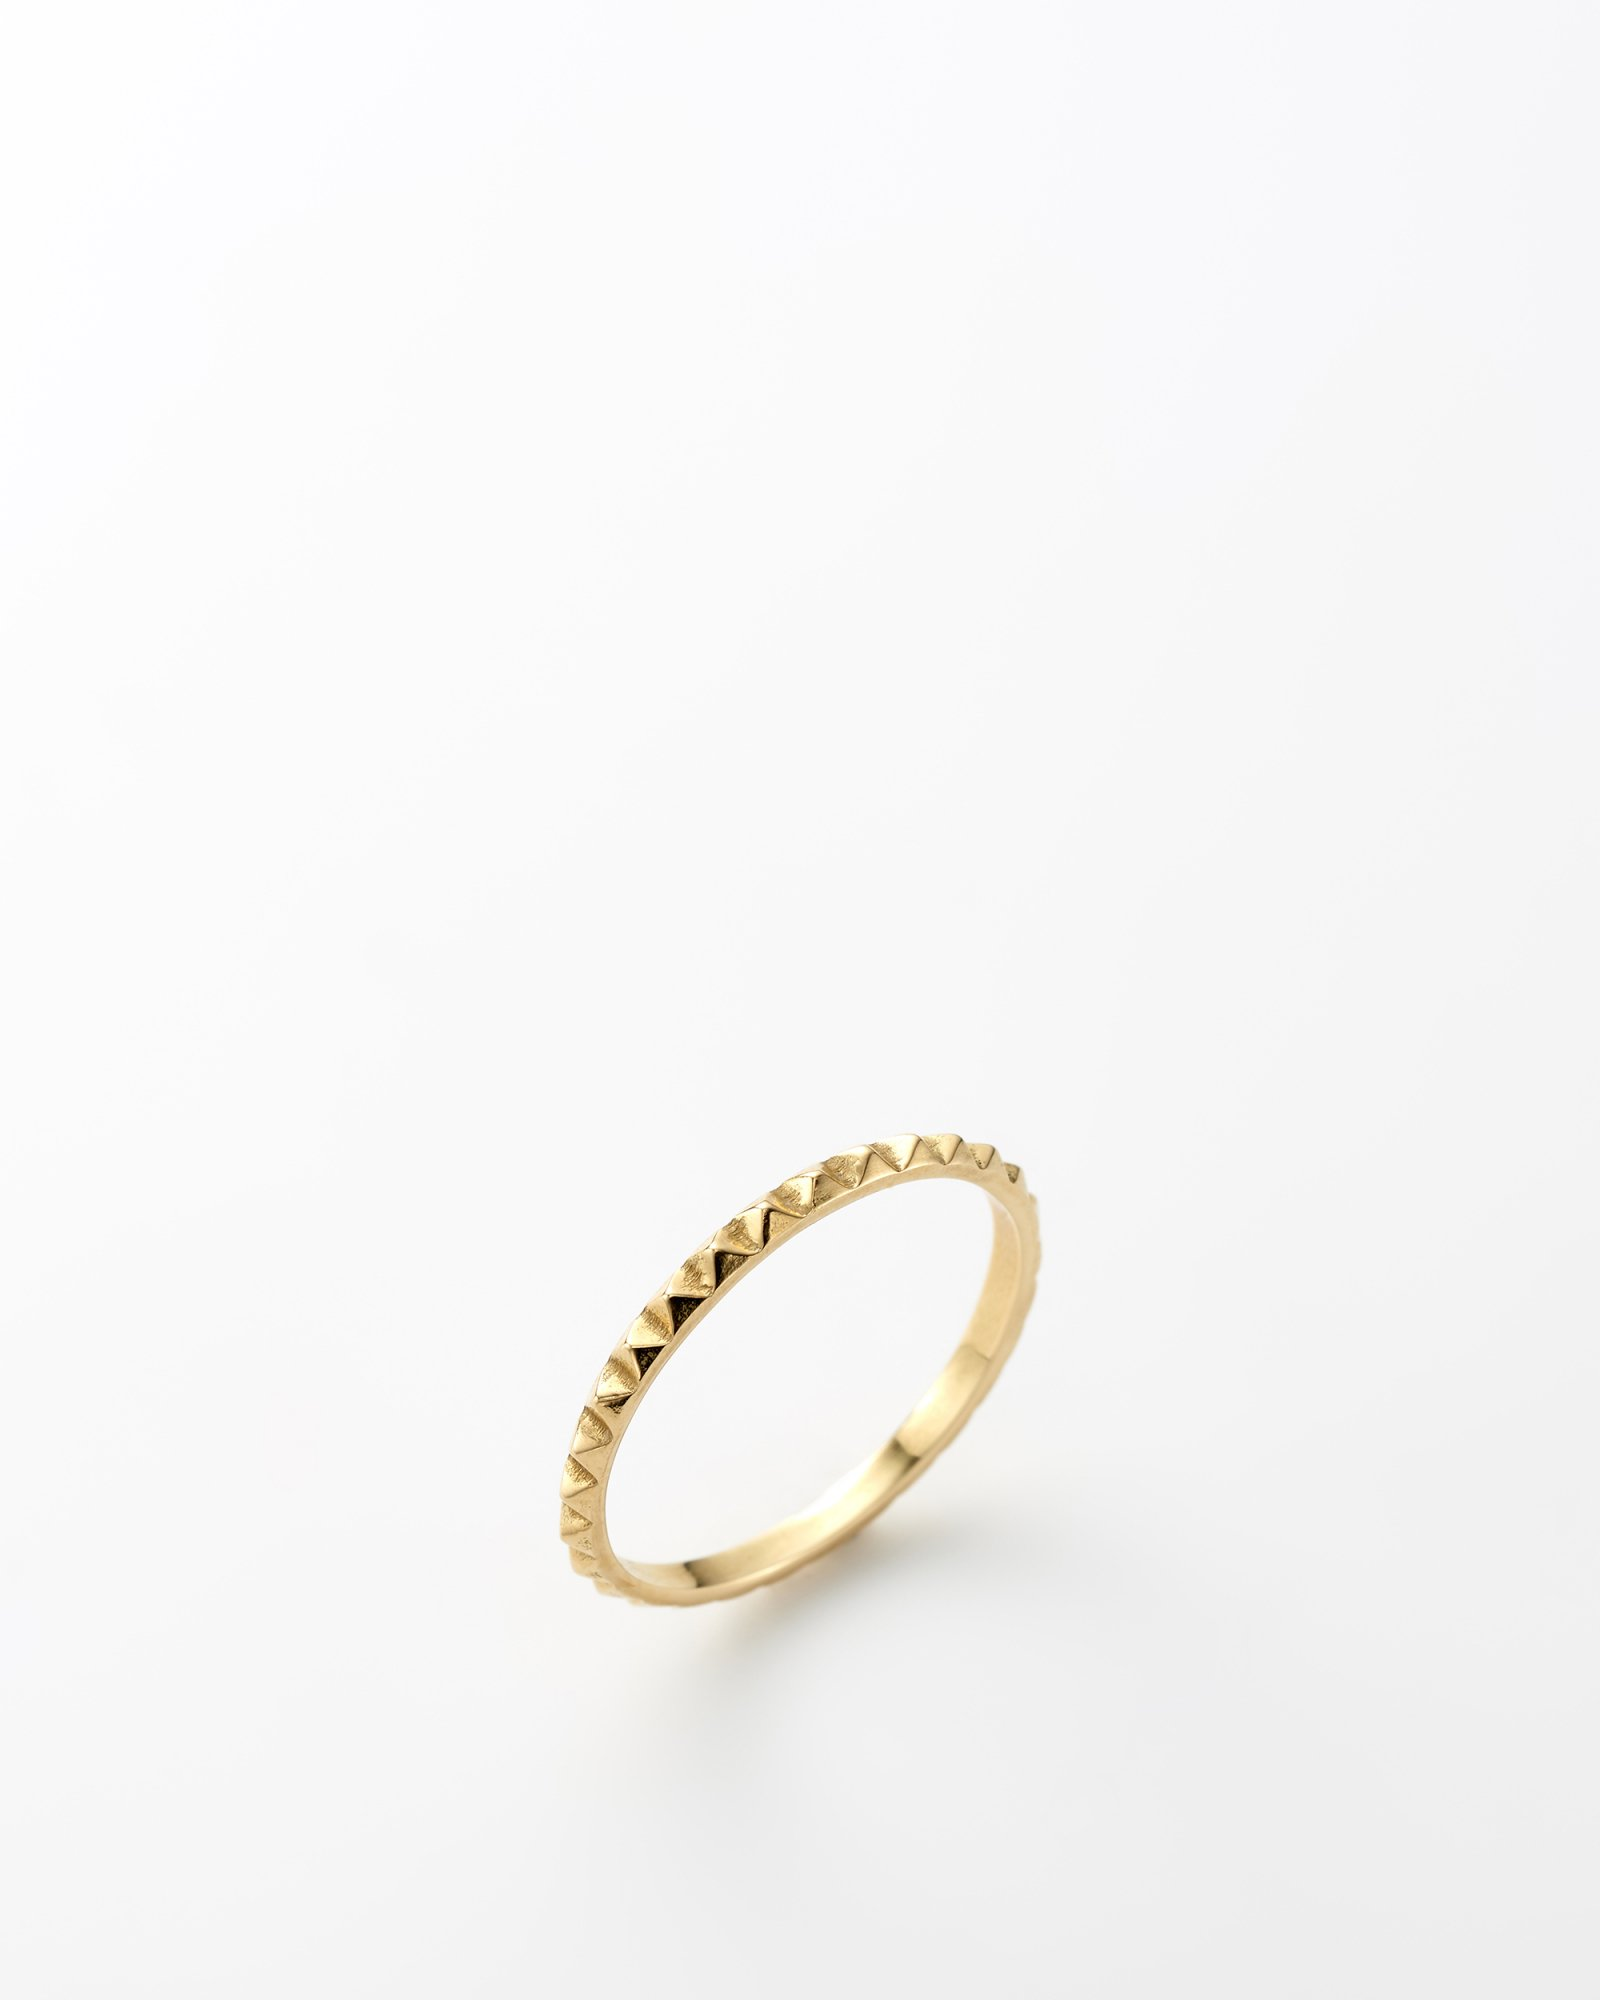 HELIOS / Diamond cut ring 9号 / 在庫商品